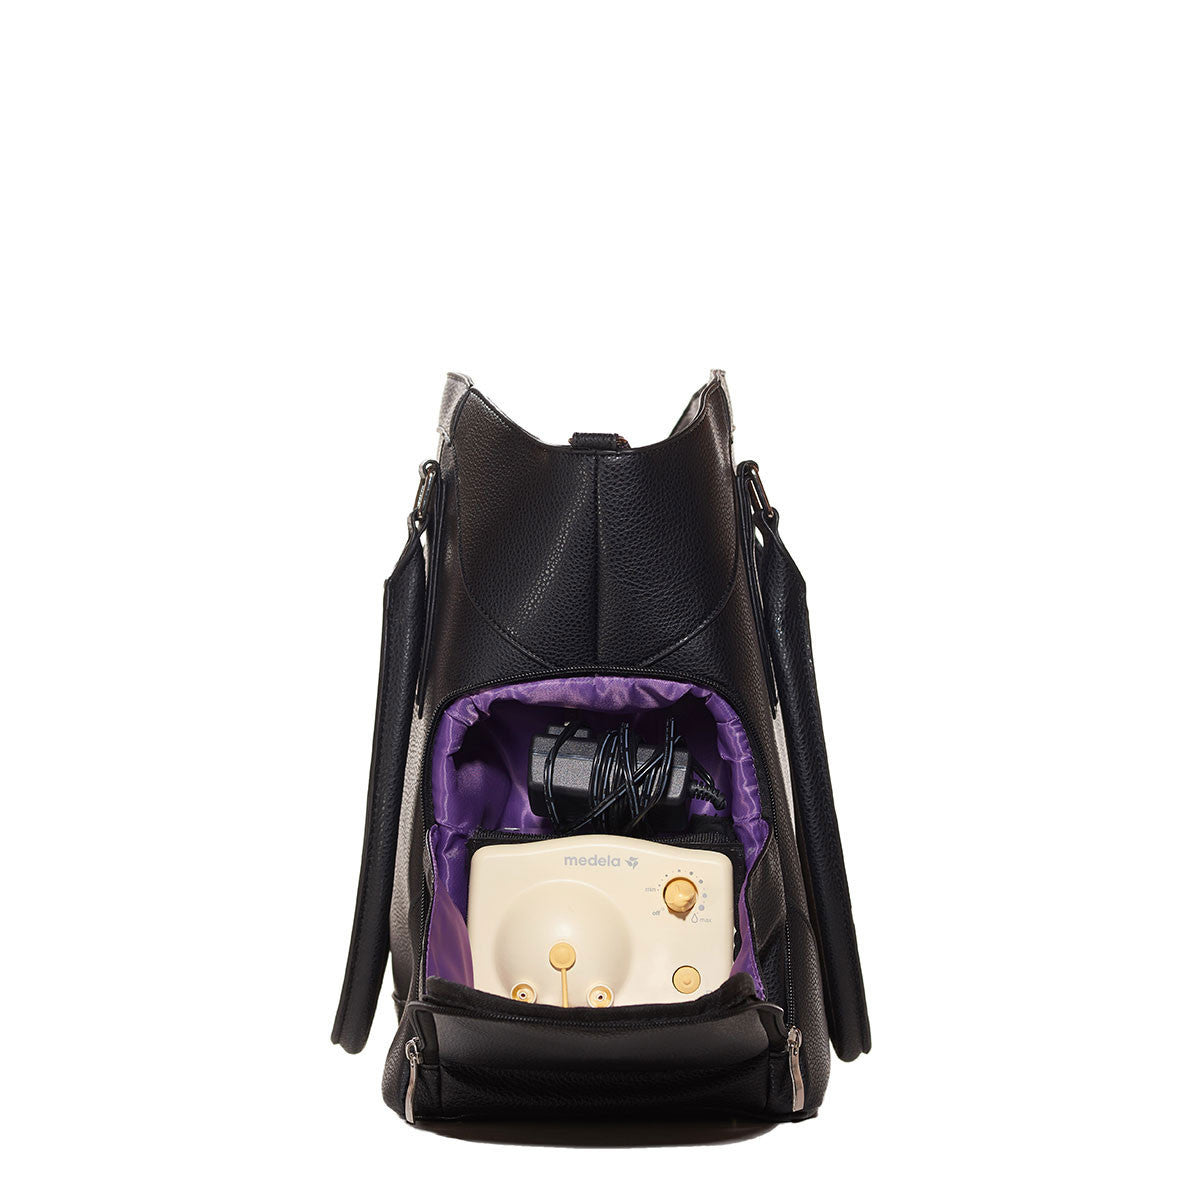 Annie (Black) - Breast Pump Bags and Pumping Accessories from Sarah Wells Bags